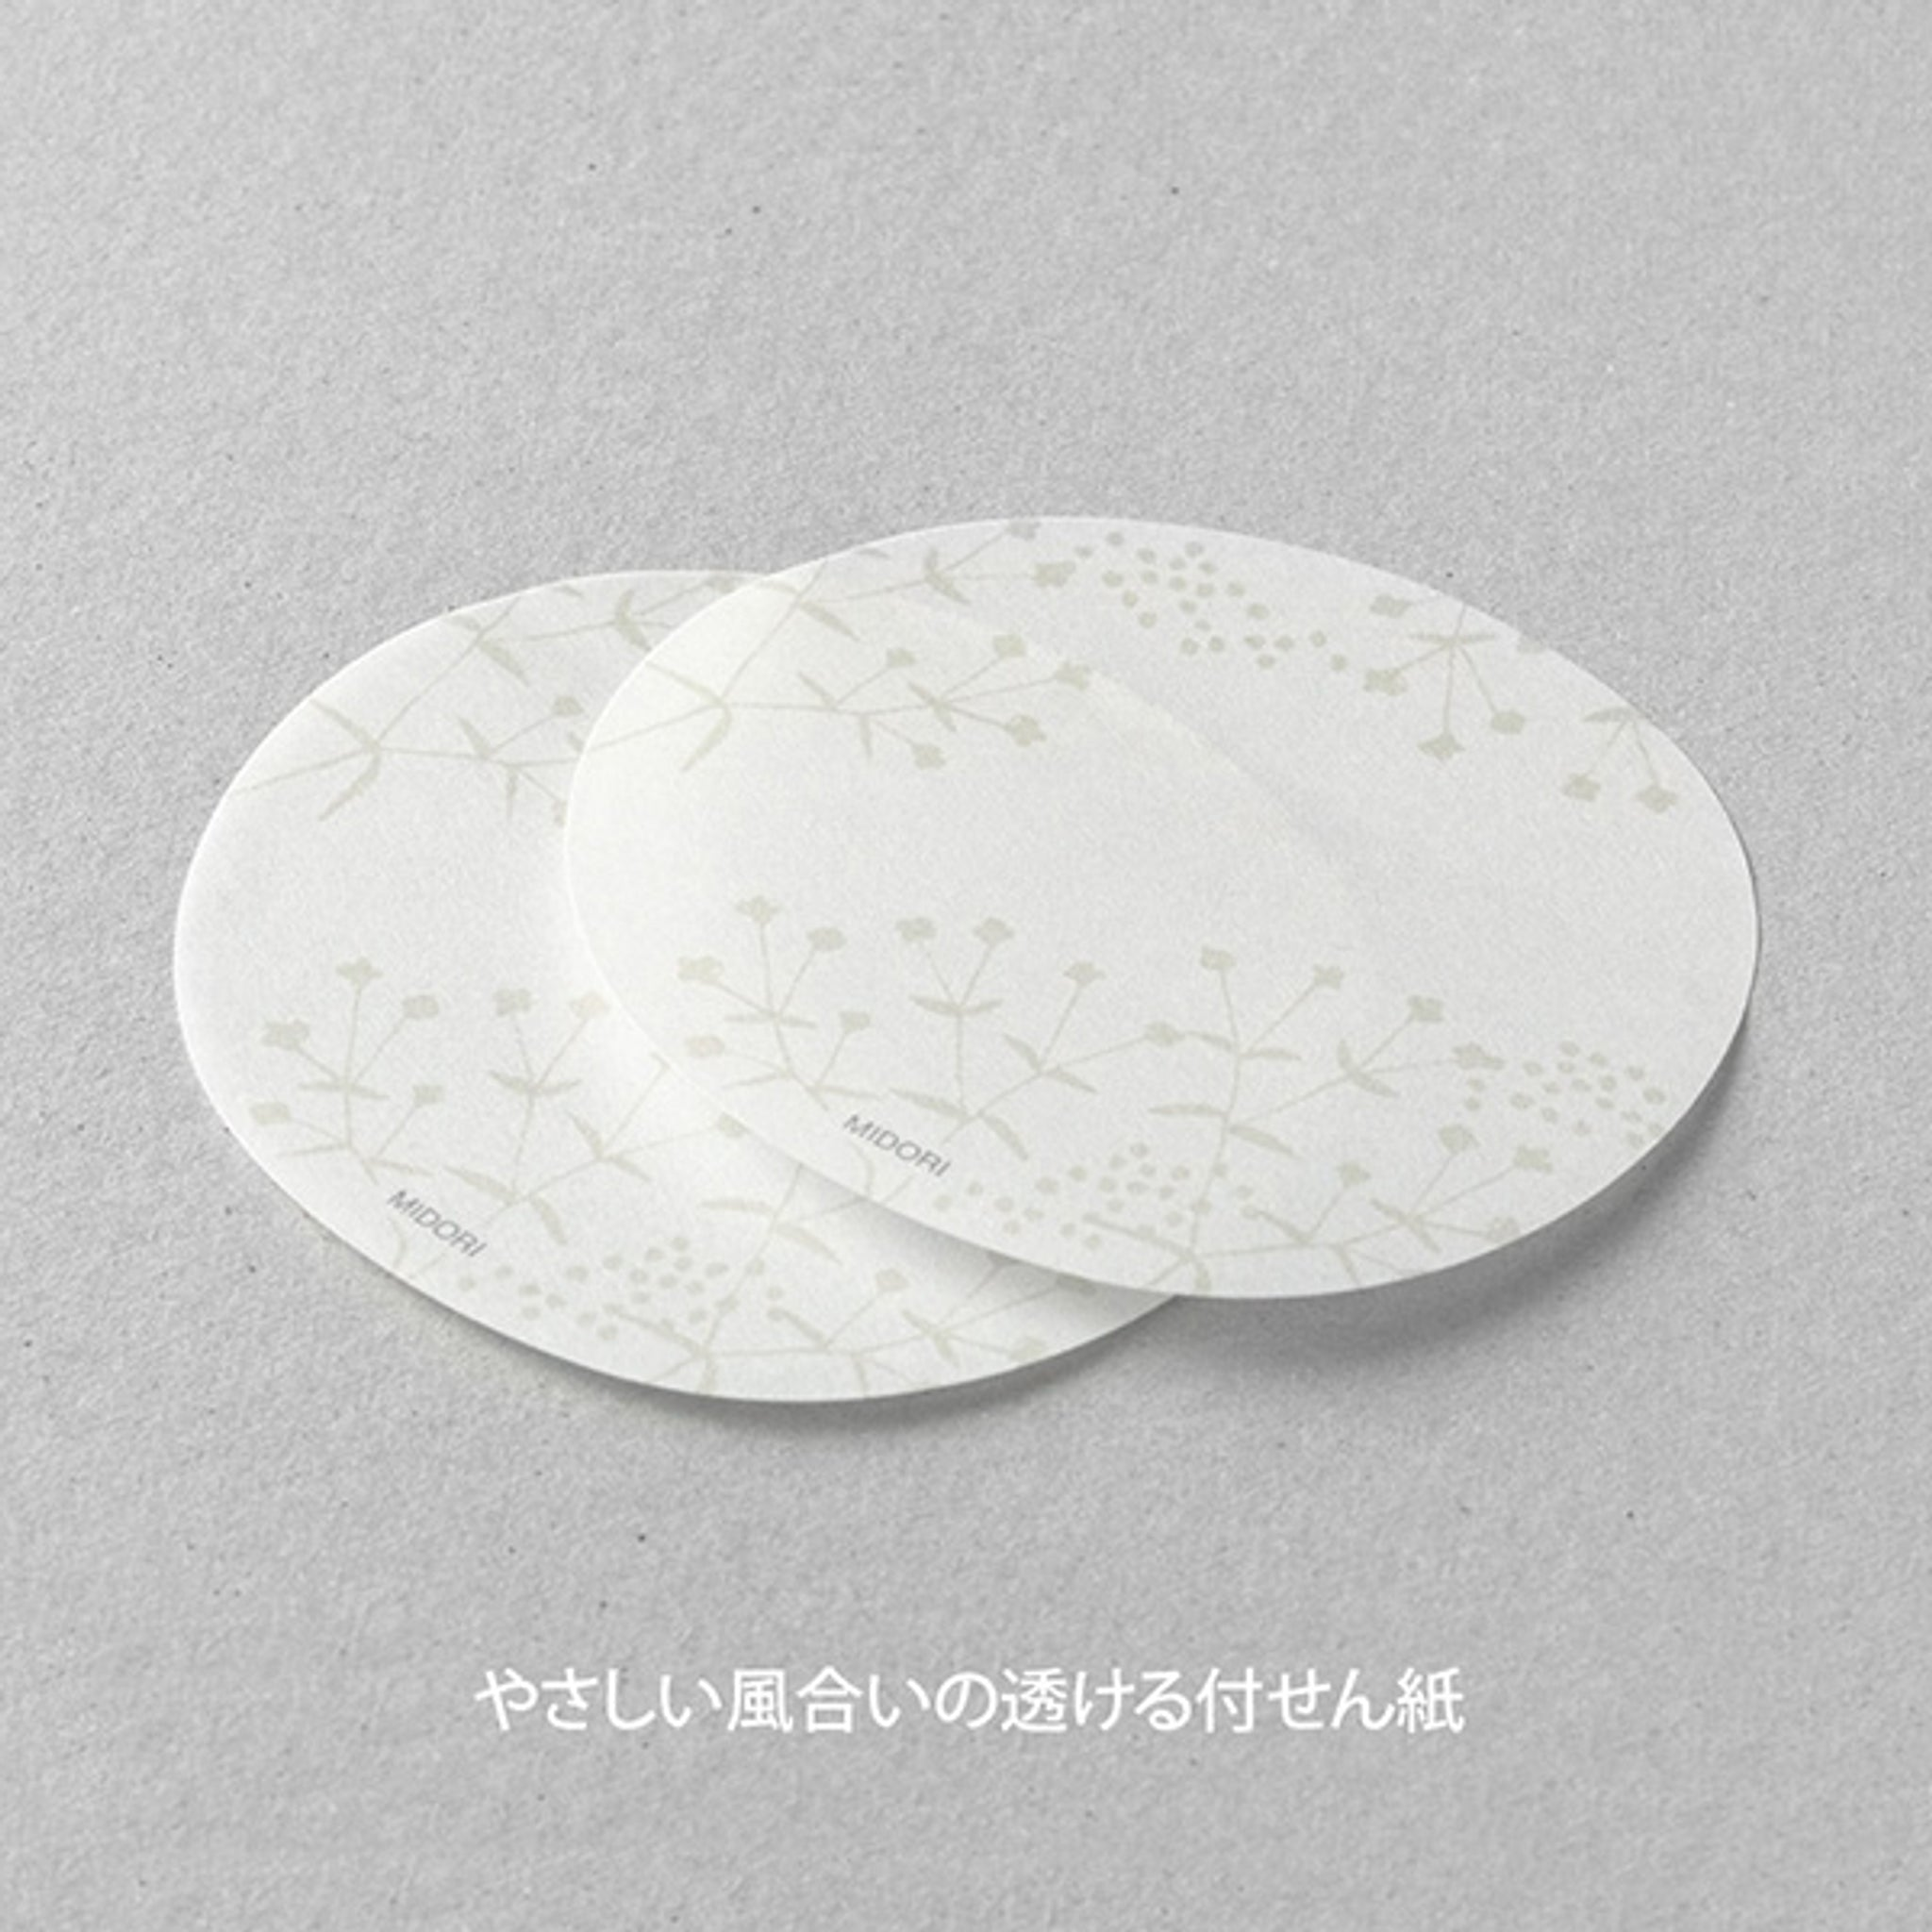 Midori Sticky Notes Transparency Small Flowers White